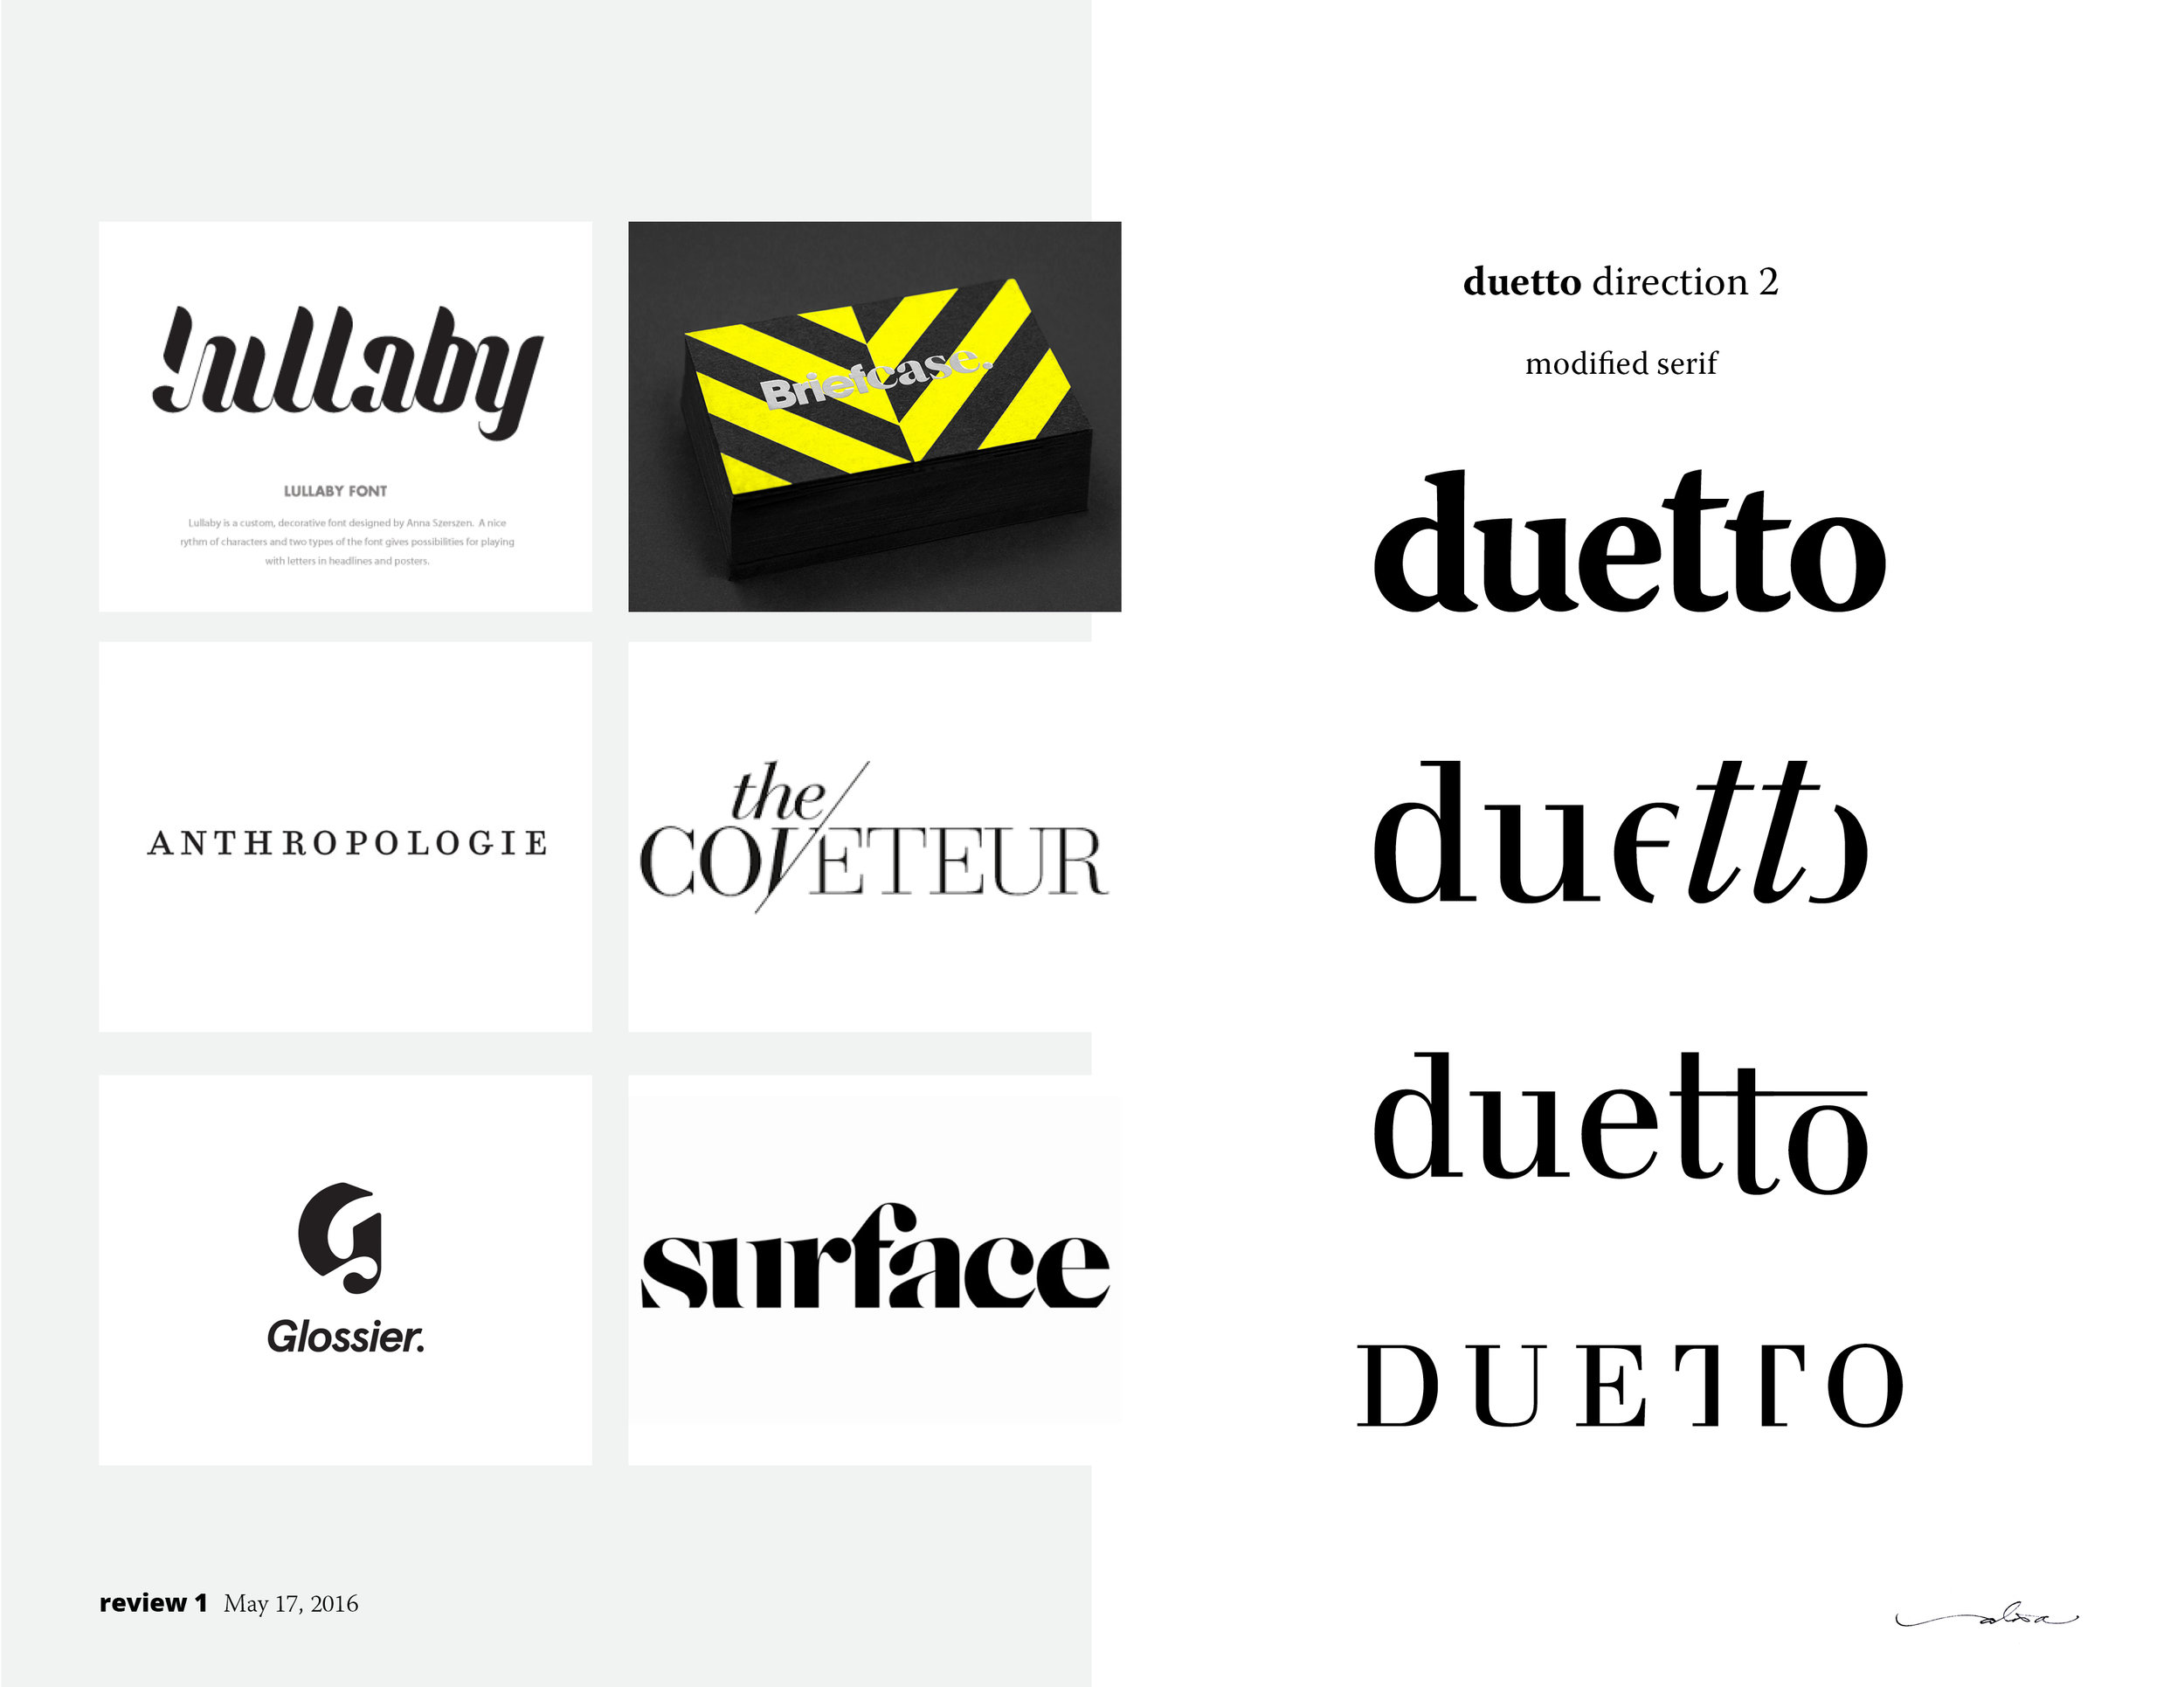 20160517_Duetto-Review1_v12.jpg